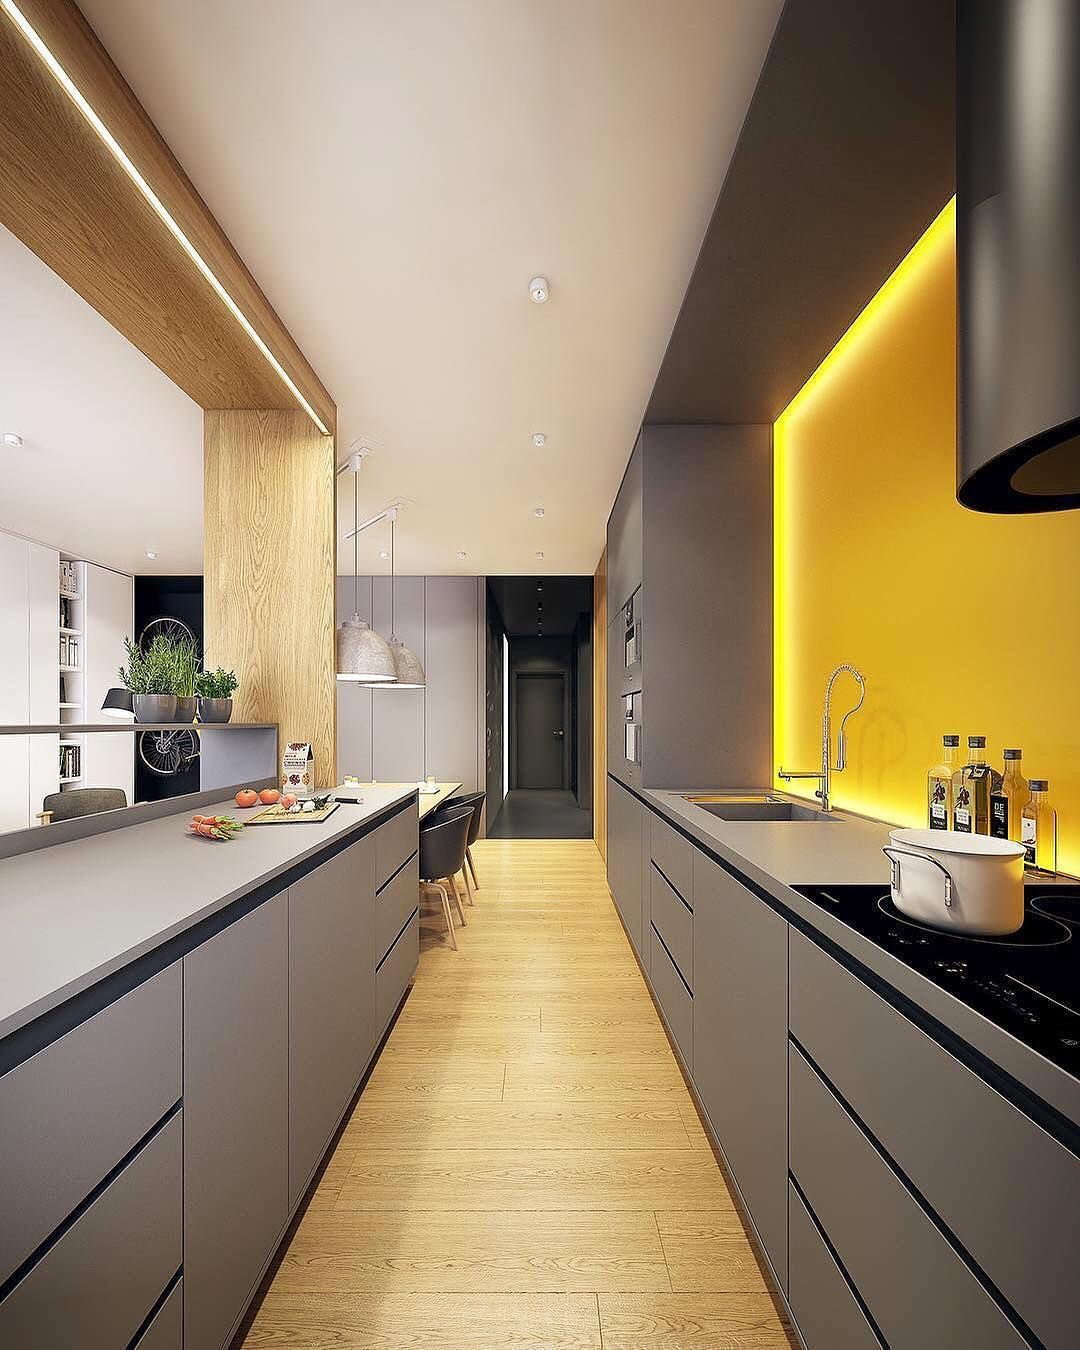 His Is A Stylish Apartment Interior Design Visualized By